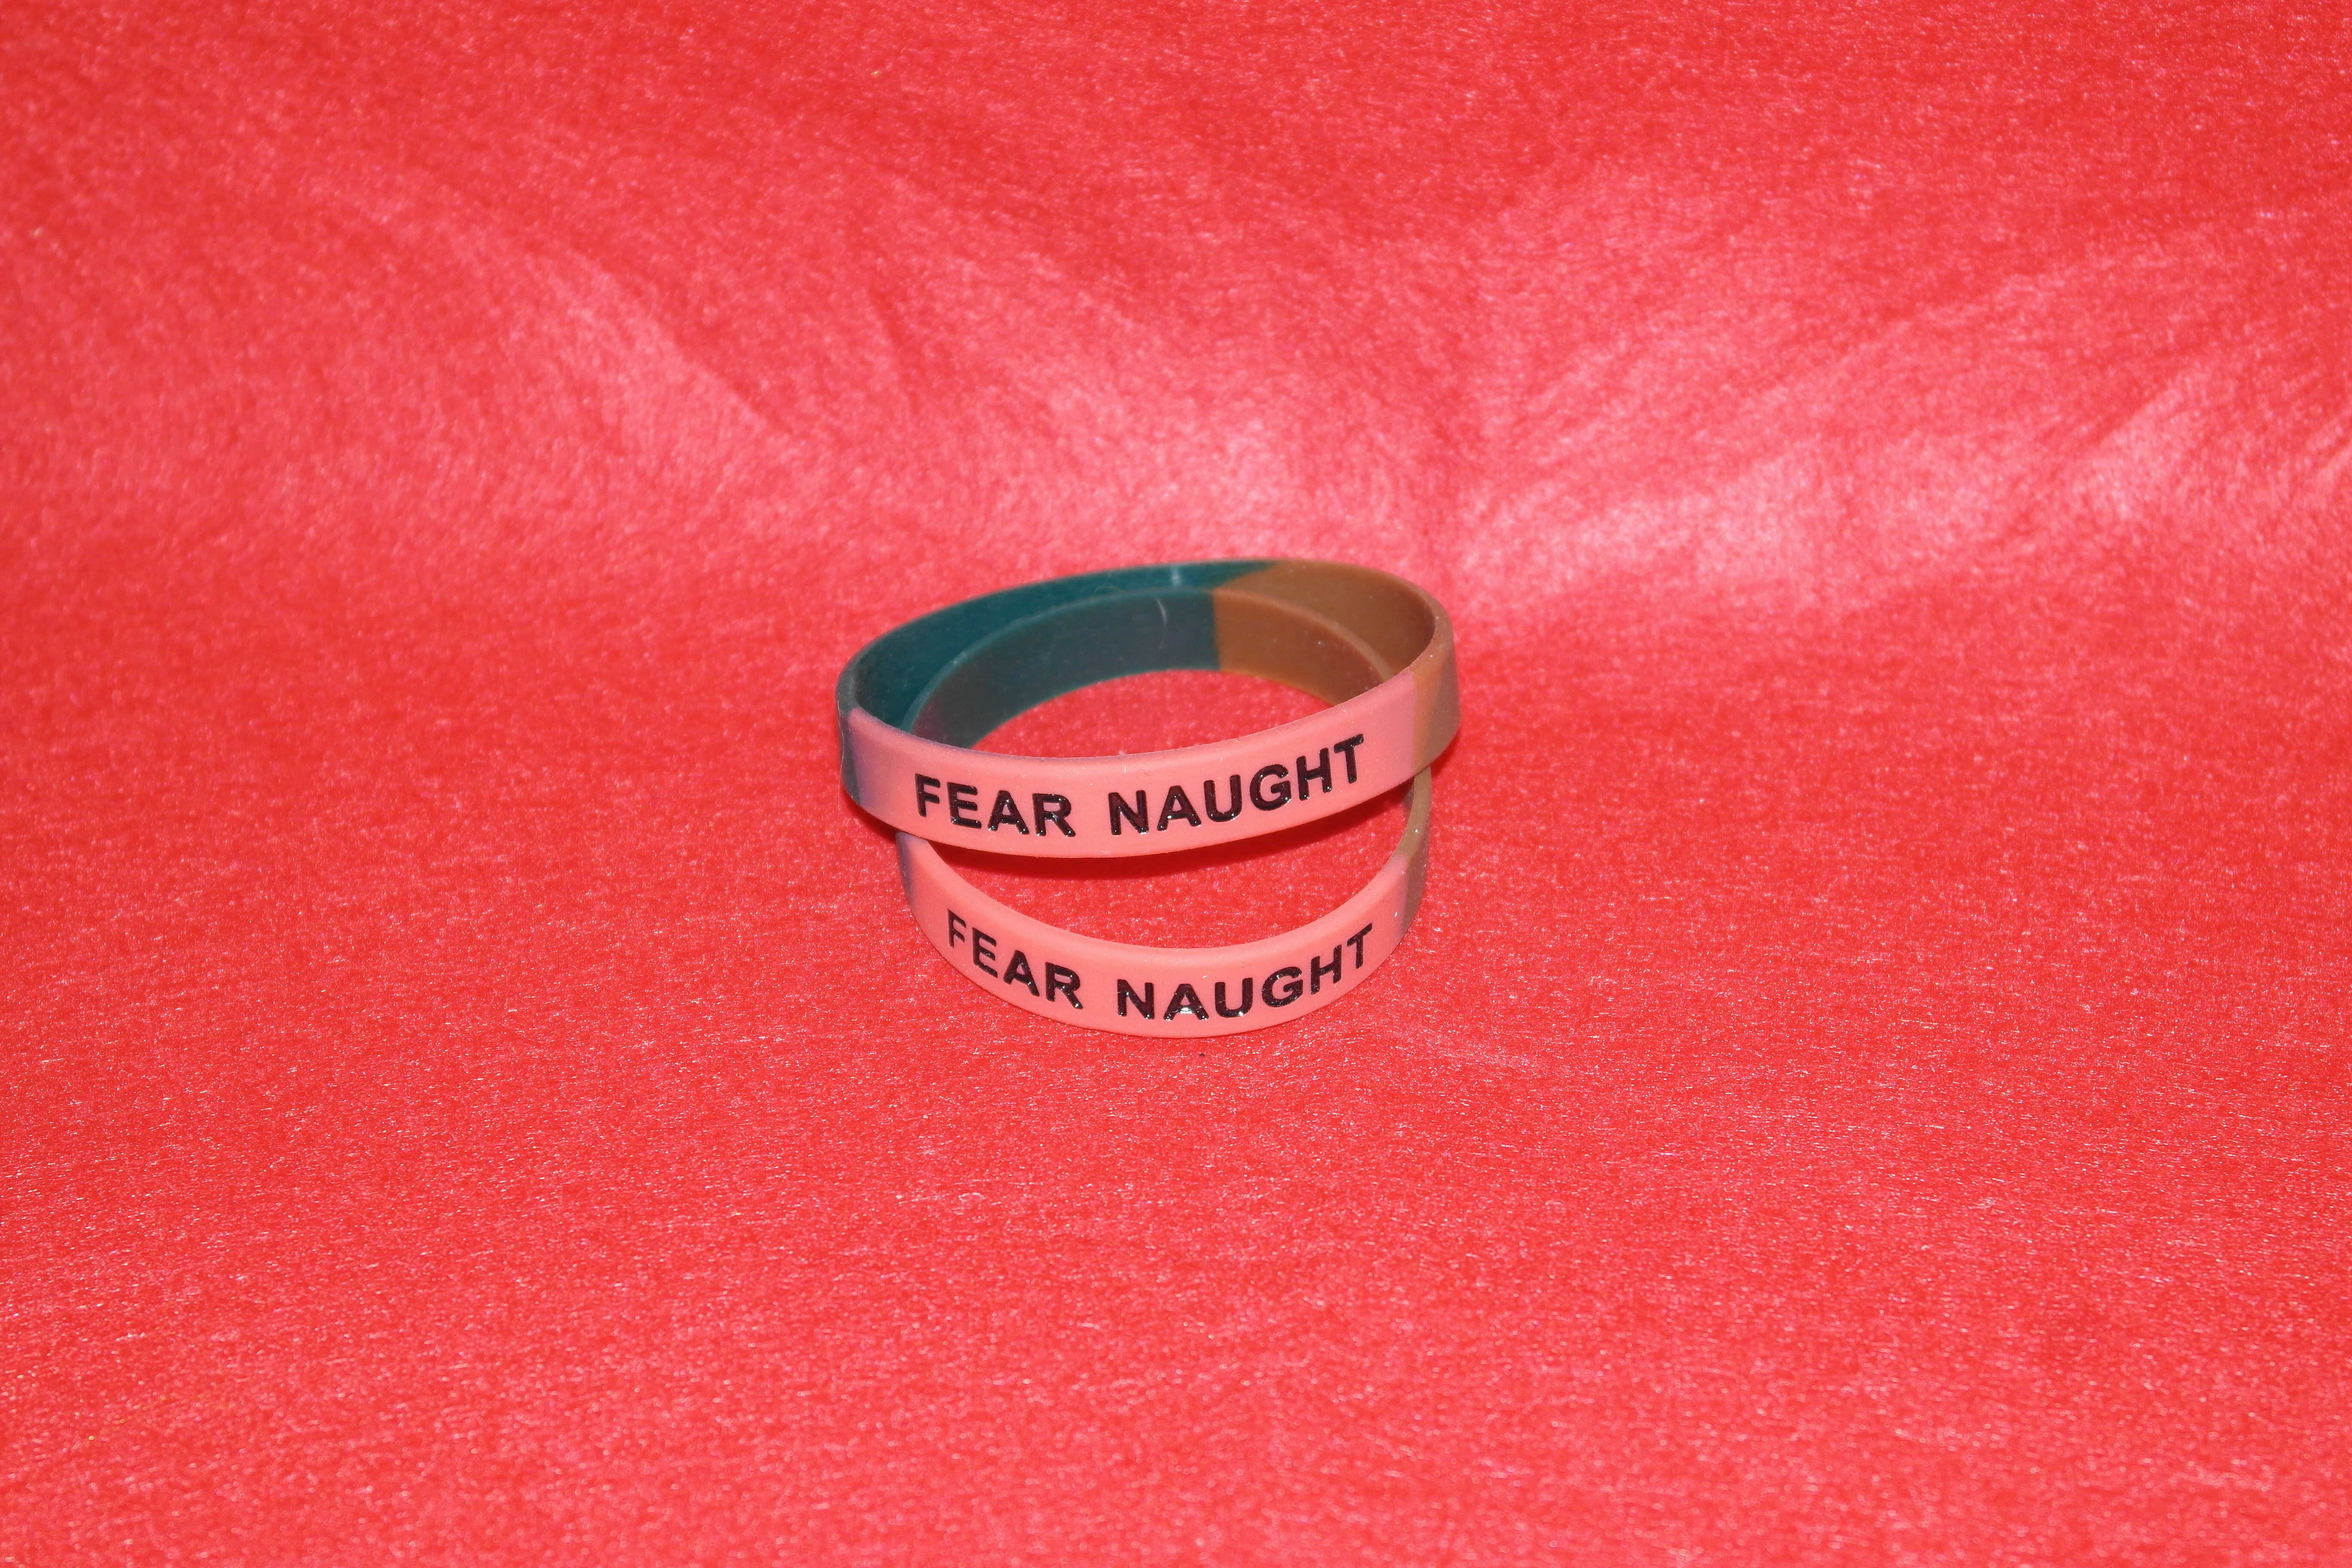 FEAR NAUGHT Wristband (0242 B4)